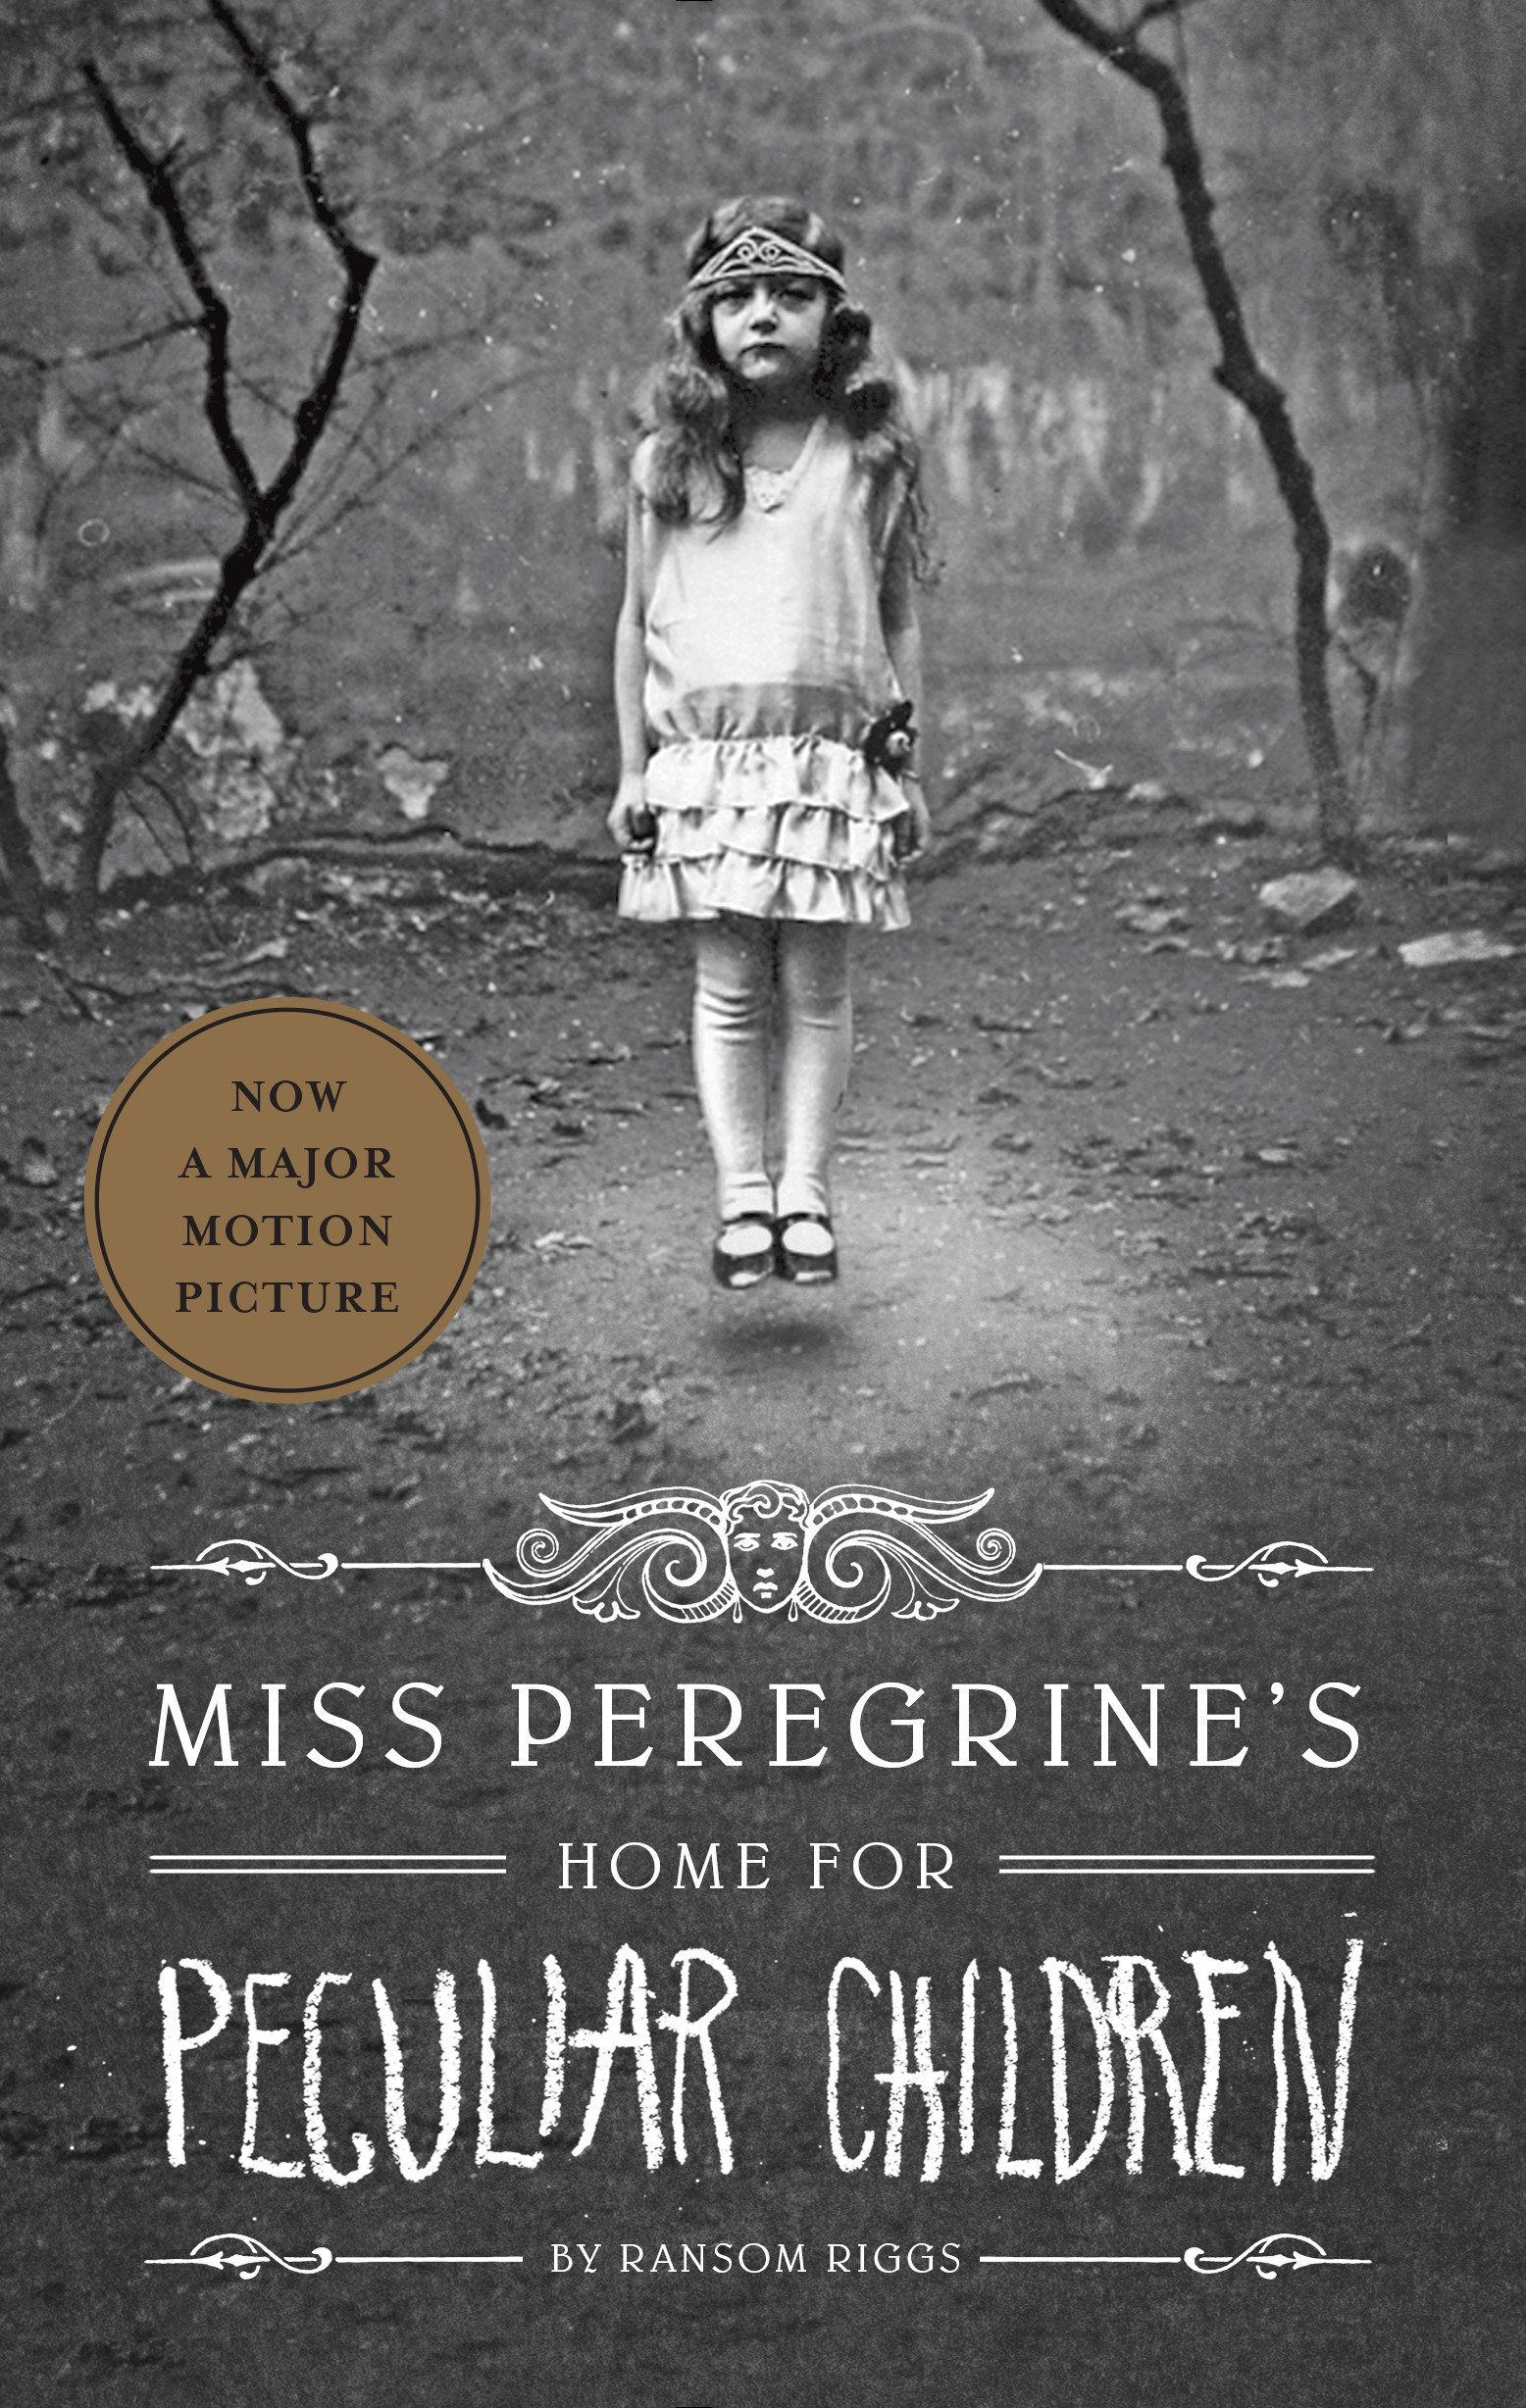 Image result for Miss Peregrine's Home for Peculiar Children by Ransom Riggs